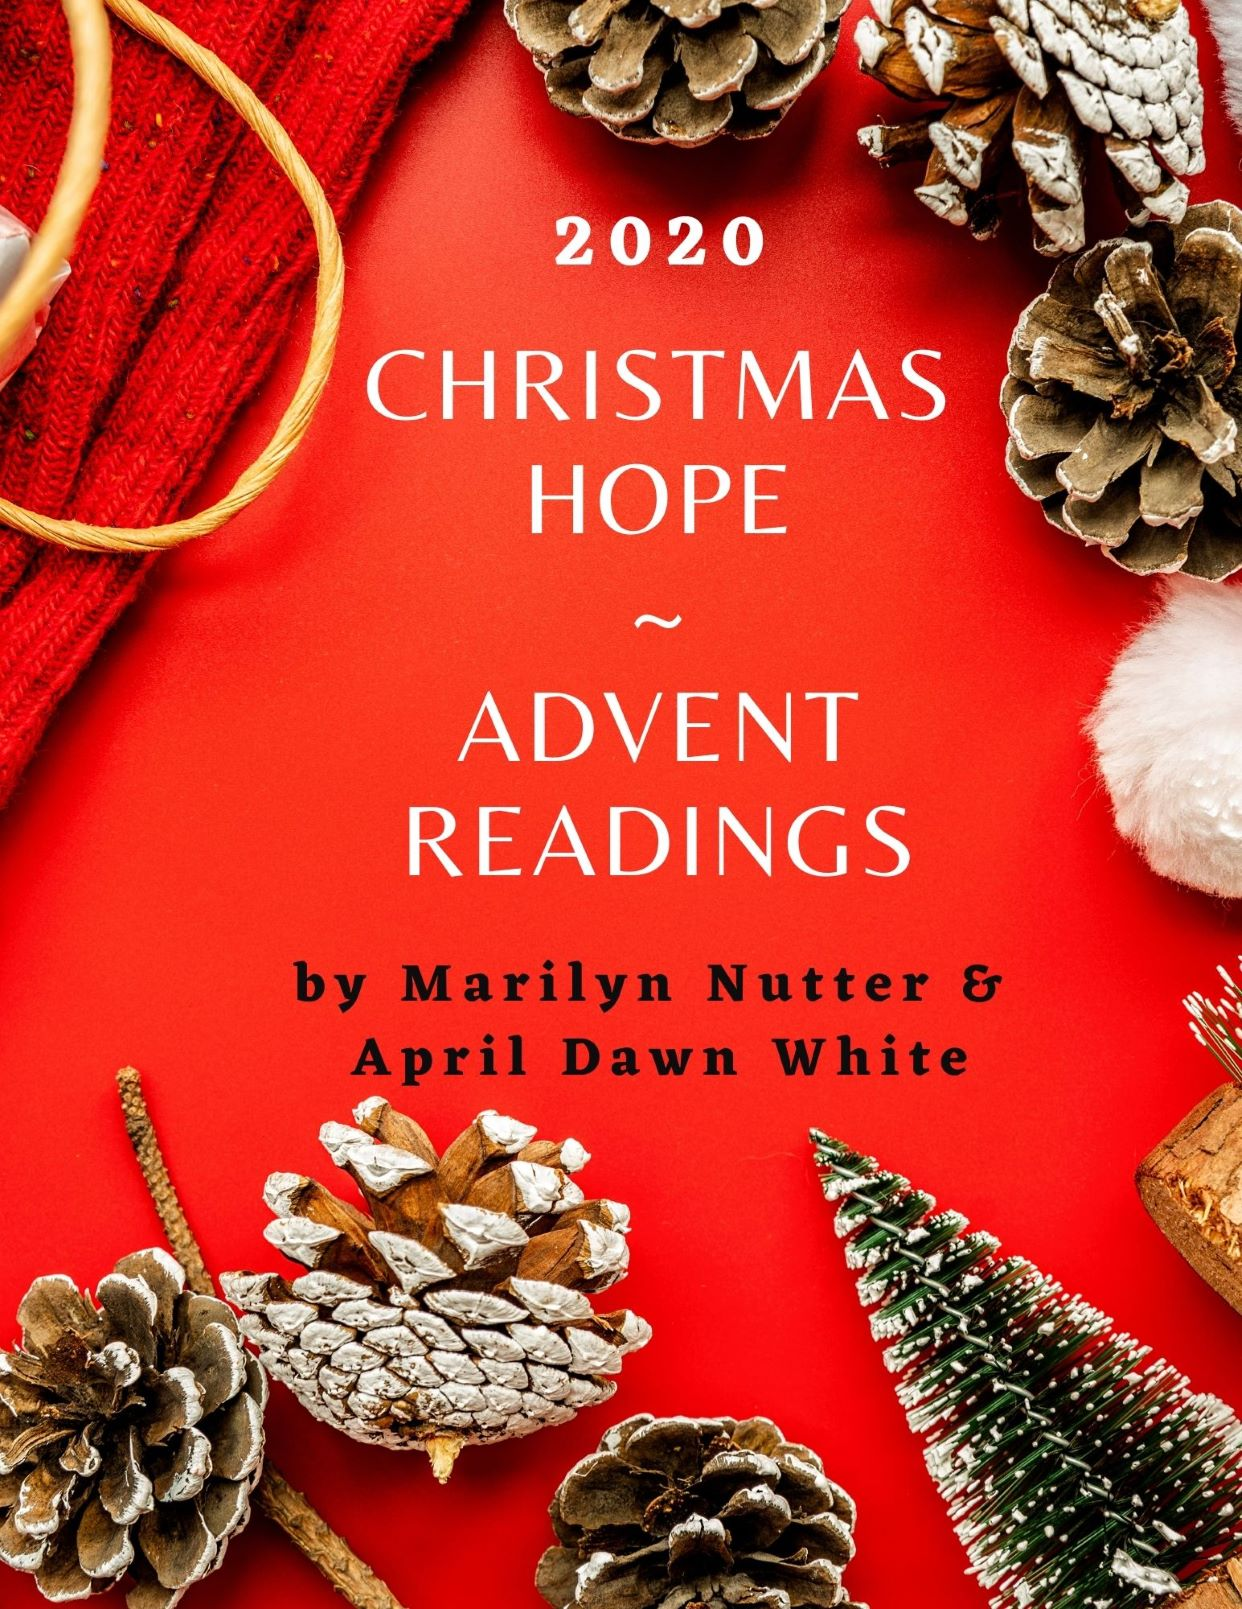 Subscribe to my blog and receive a complimentary downloadable copy of